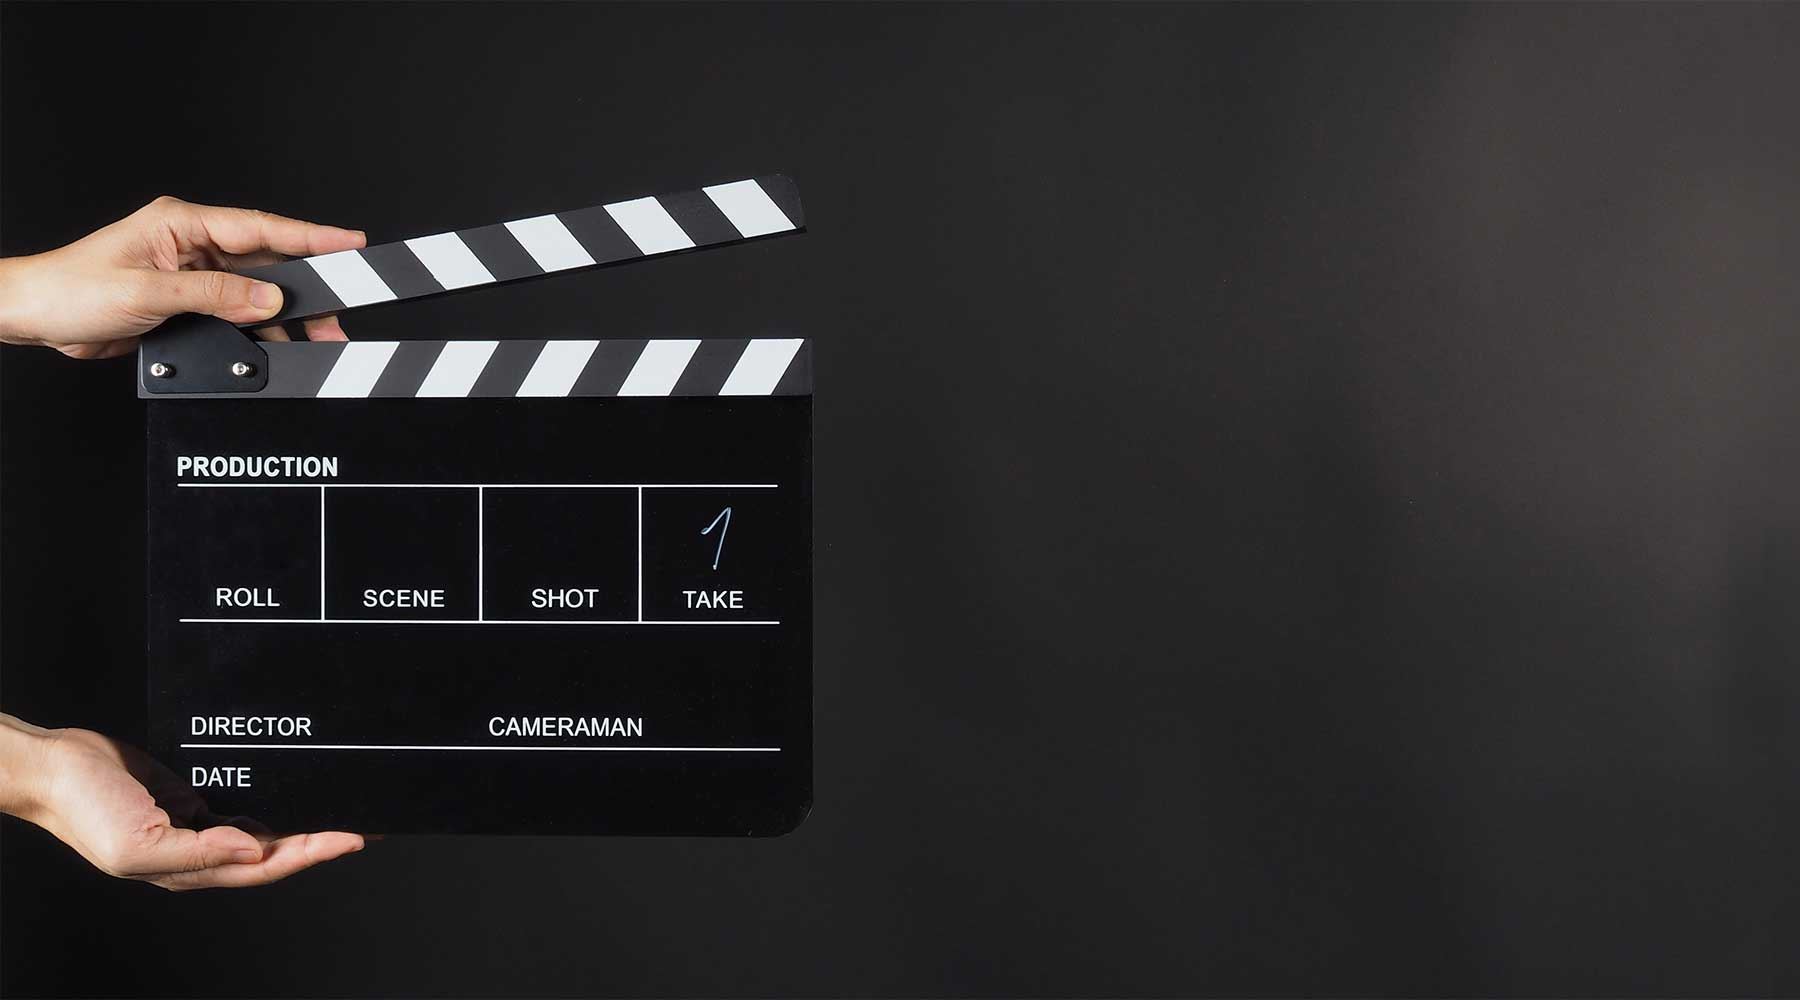 clapperboard-on-black-background-with-hands